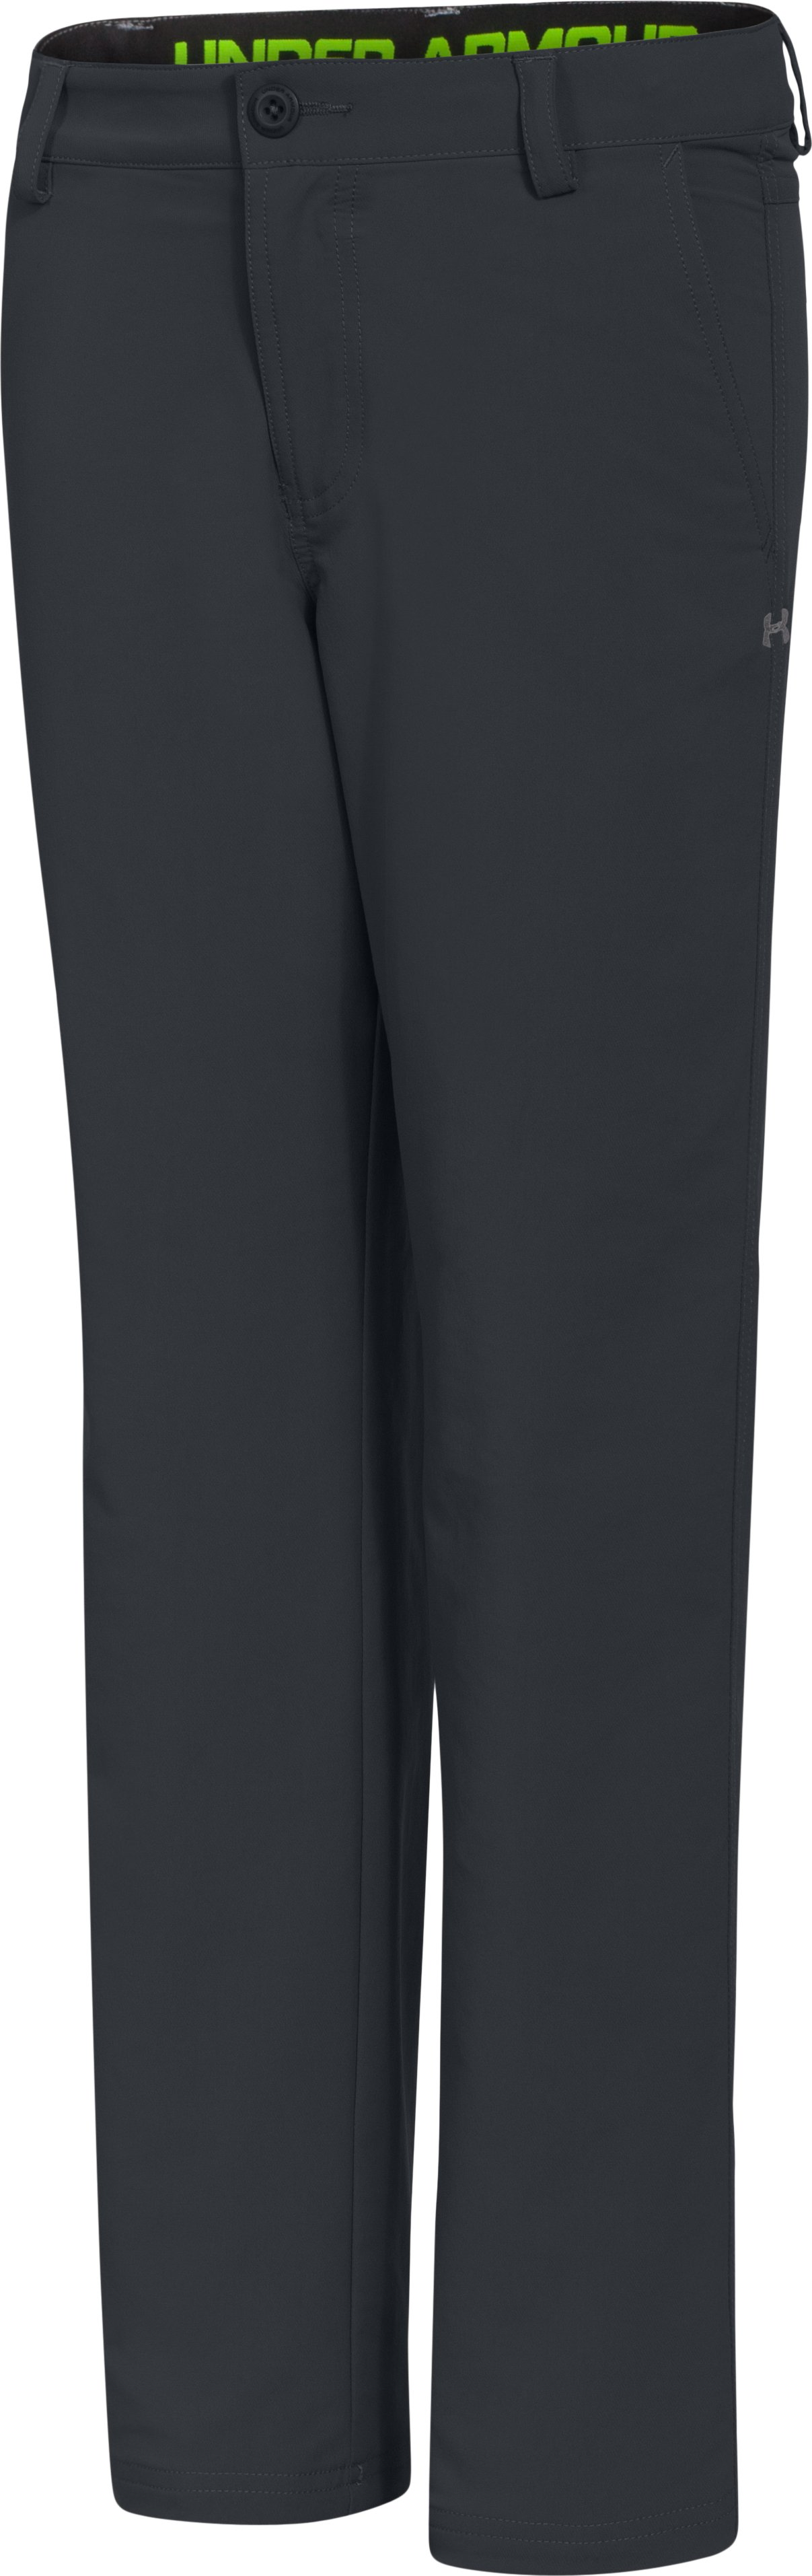 Boys' UA Golf Pants, ANTHRACITE, zoomed image